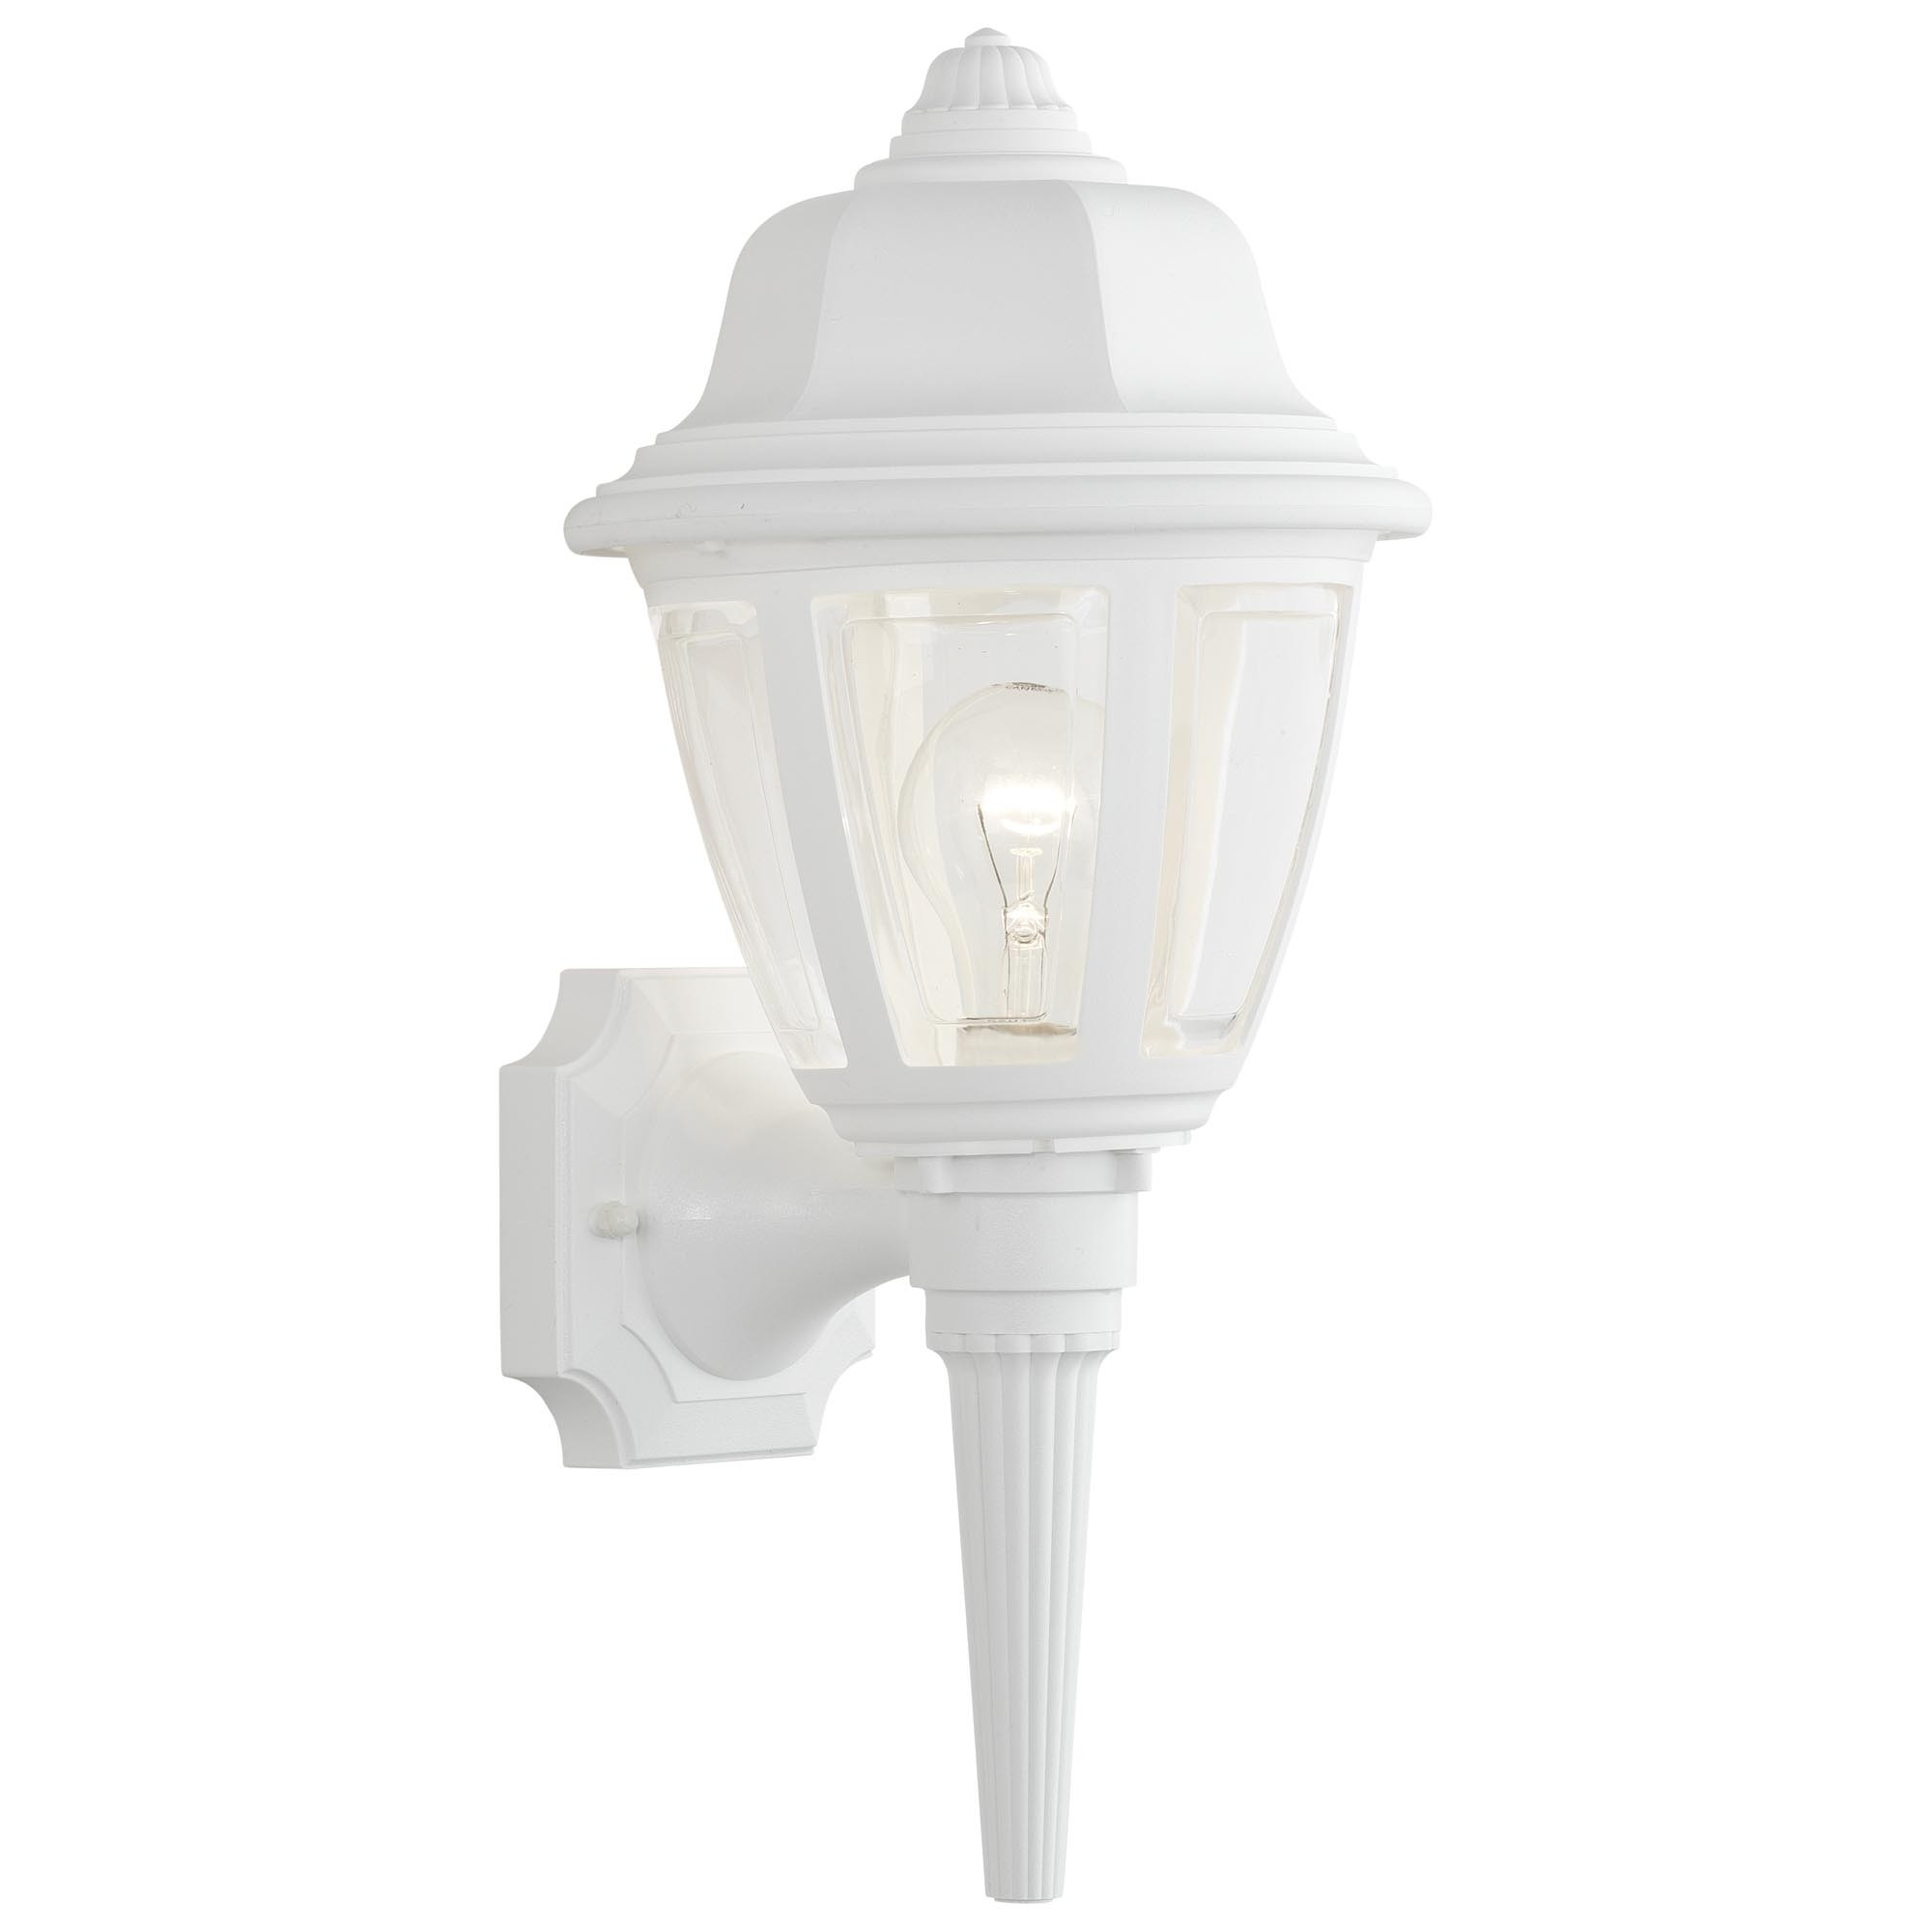 10 Benefits Of White Outdoor Wall Light Fixtures | Warisan Lighting Within White Outdoor Lanterns (View 14 of 20)